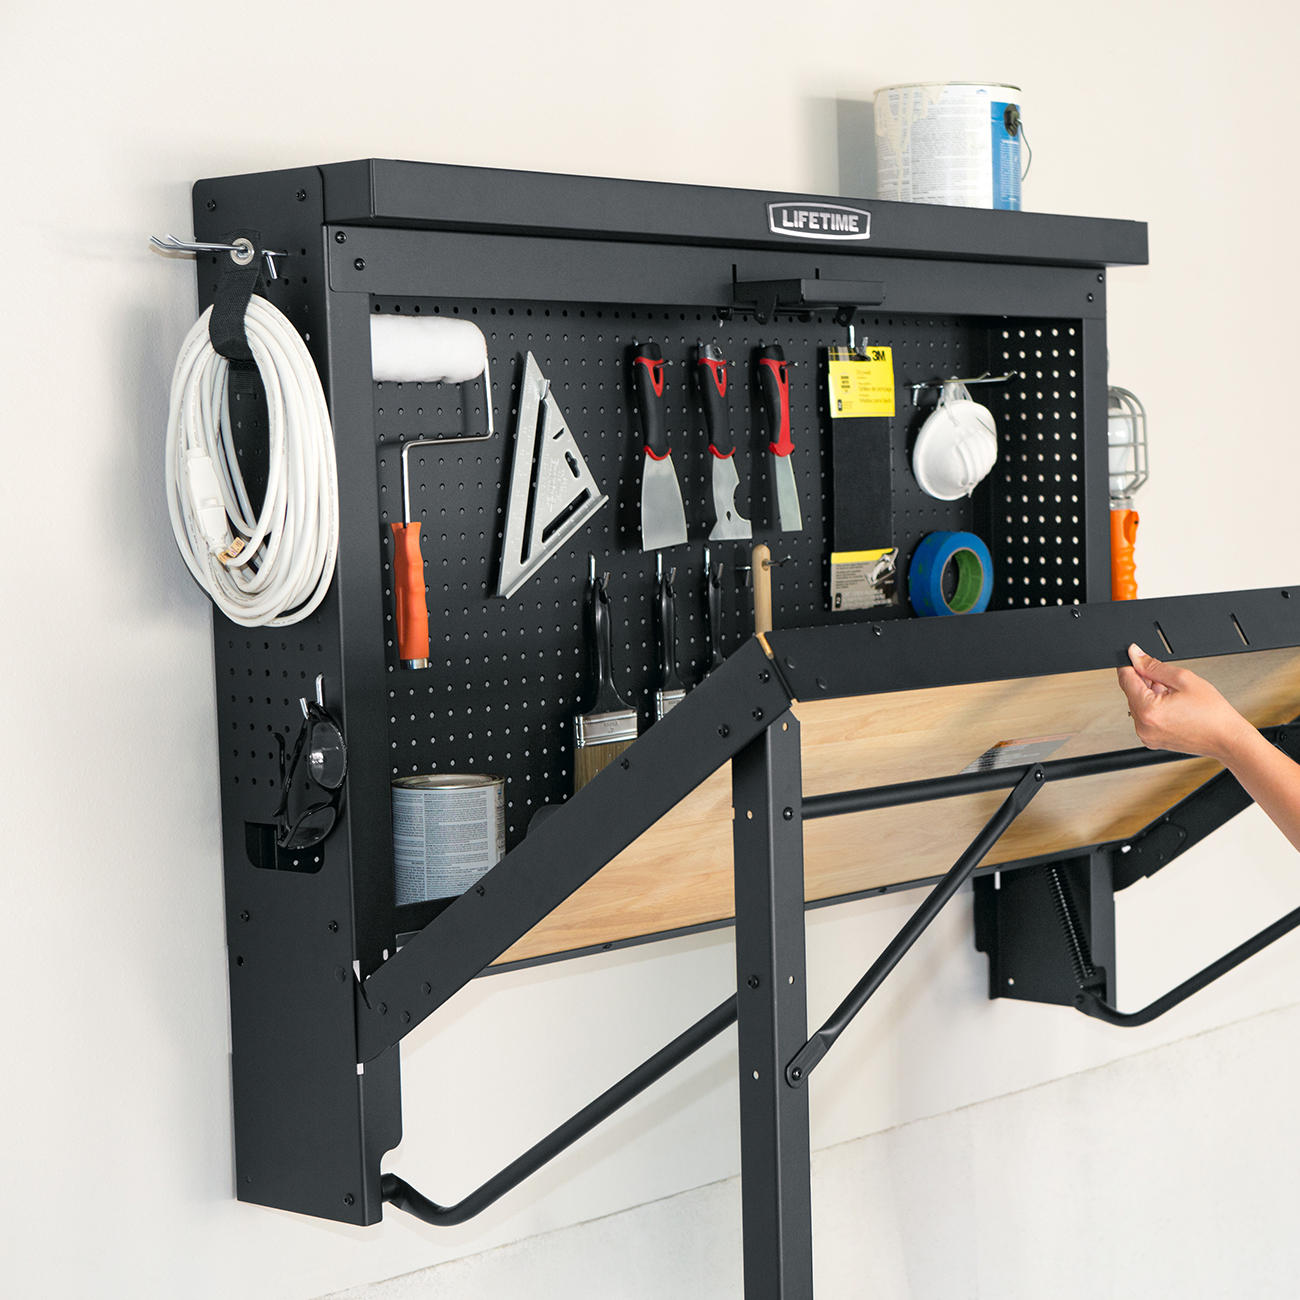 Wall Mounted Folding Workbench | Wall Mounted Workbench | Floating Workbench